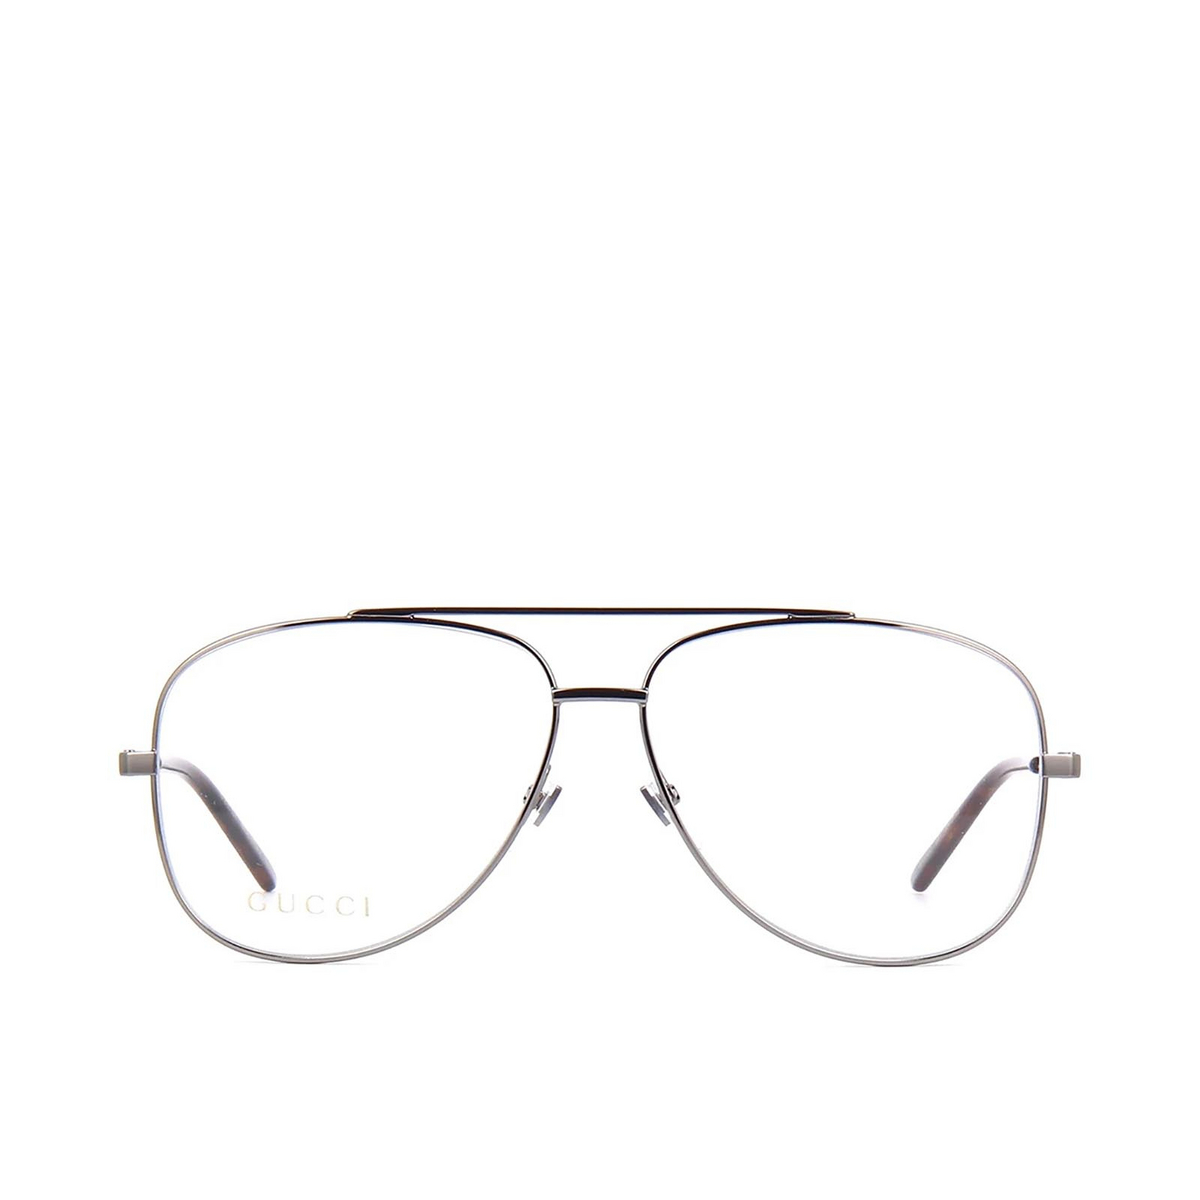 Gucci® Aviator Eyeglasses: GG0442O color Ruthenium 001 - front view.